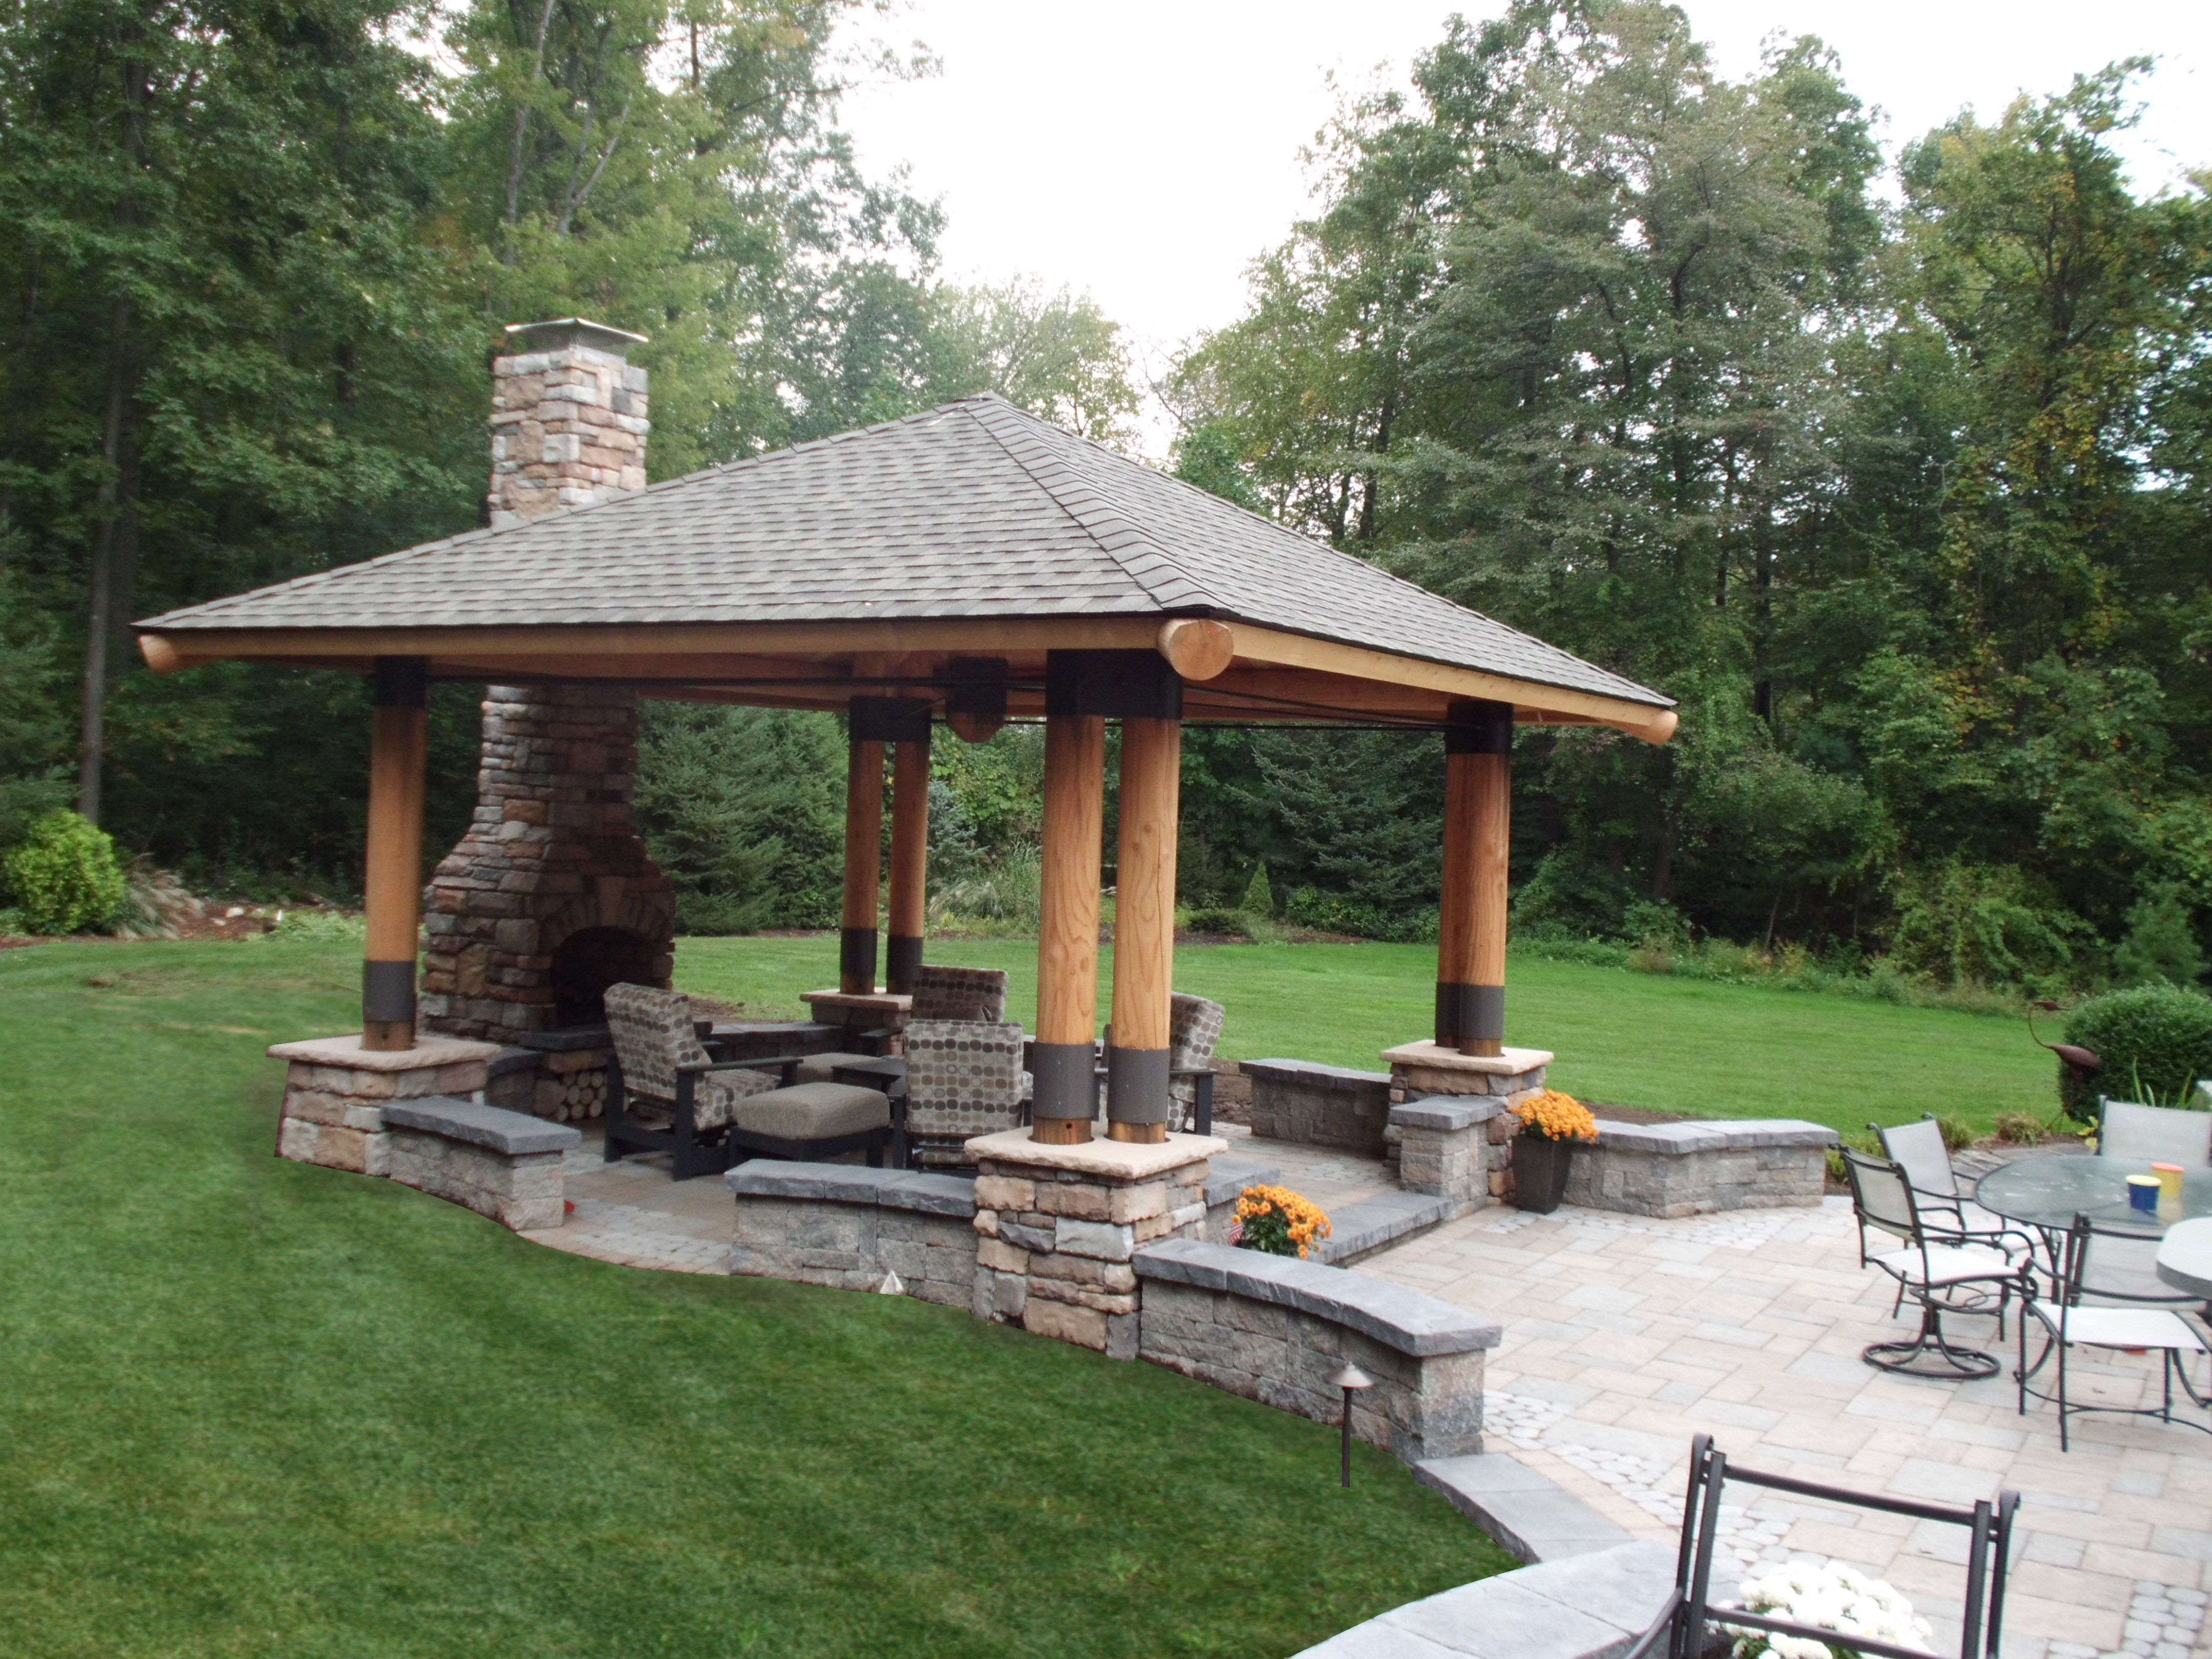 paver patio designs with fireplace Pavilion built into columns on paver patio with sitting